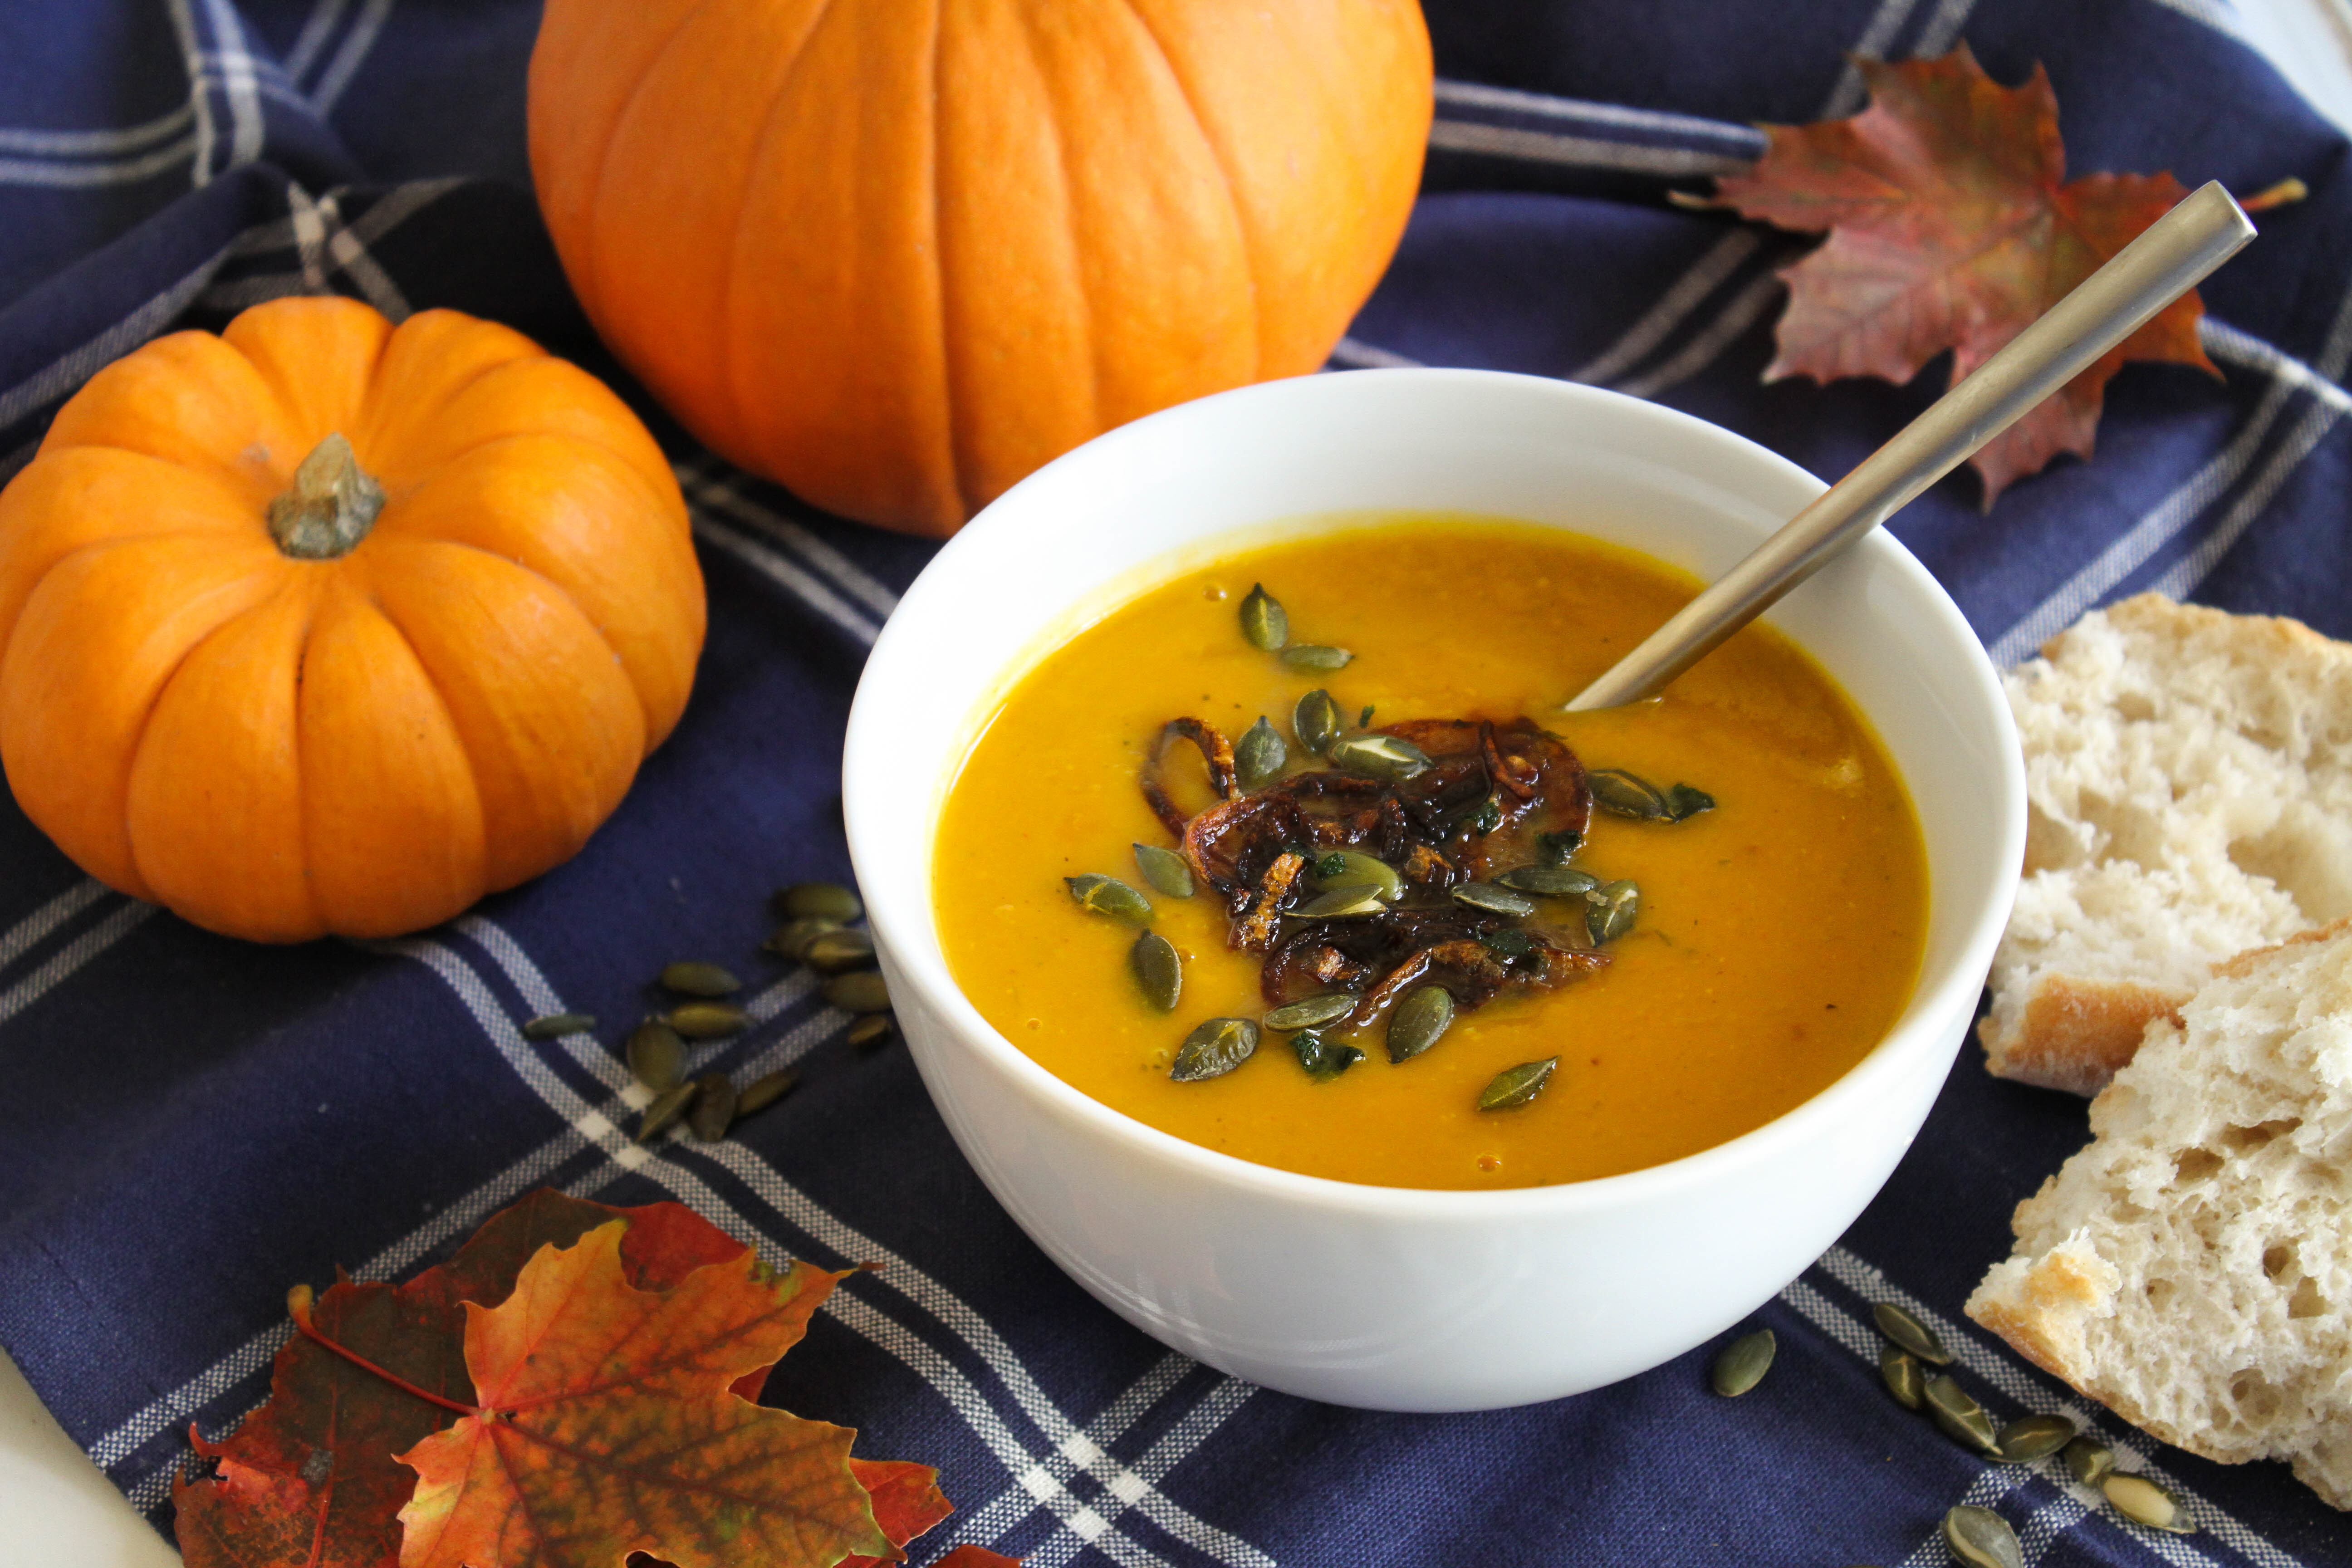 Roasted Pumpkin and Sage Soup with Crispy Shallots and Pumpkin Seeds